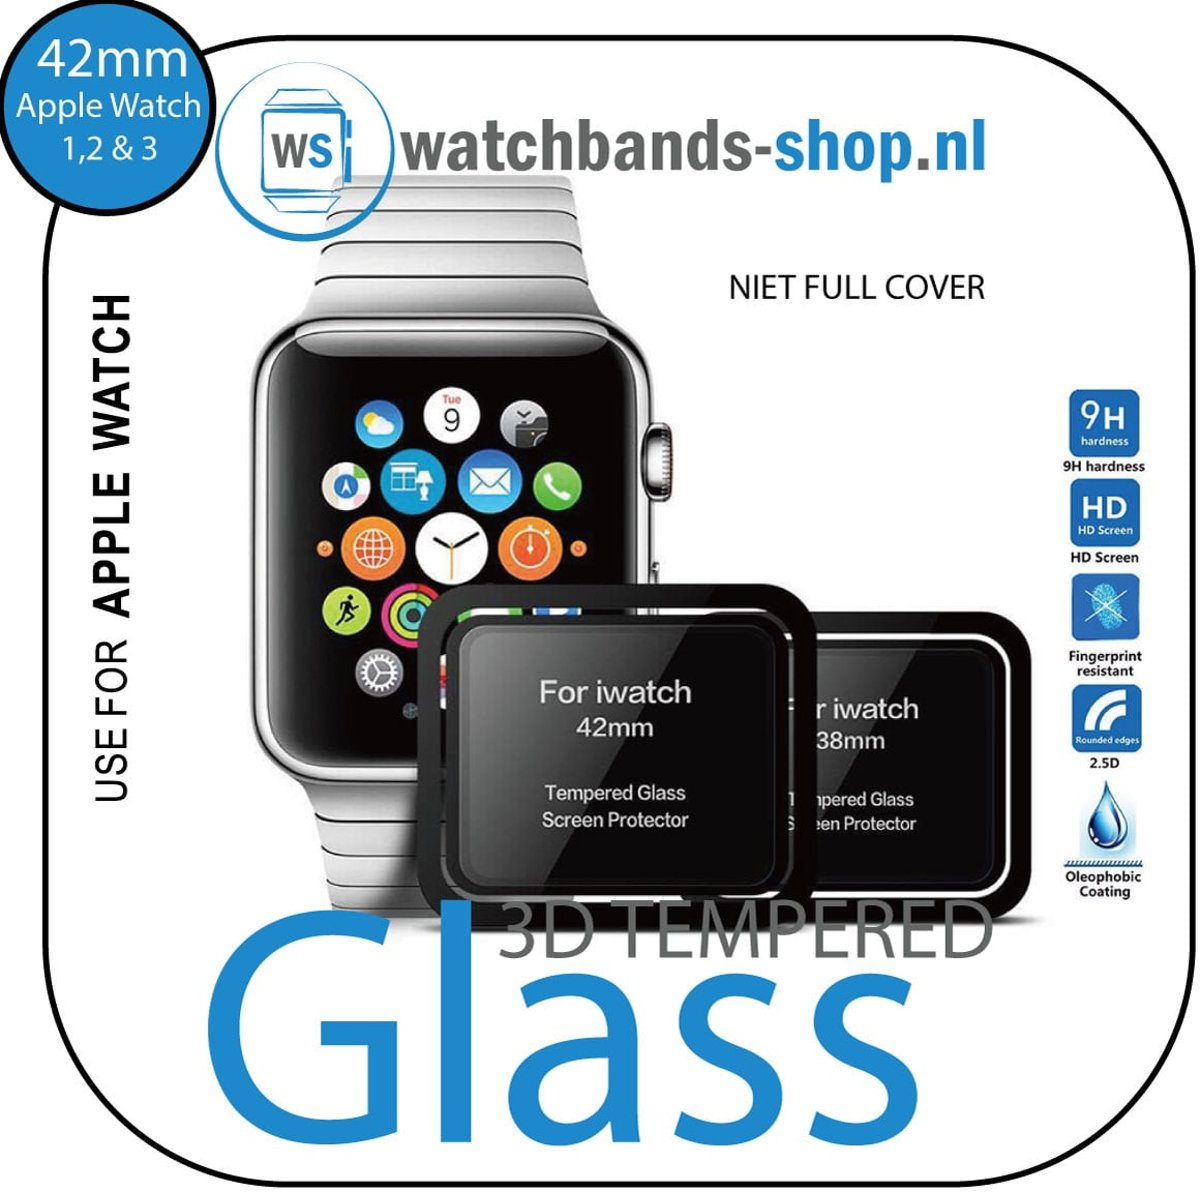 Screen Protector Tempered Glass Apple Watch Series 1 / 2 / 3 (42mm) - Black edge | niet full cover Watchbands-shop.nl kopen